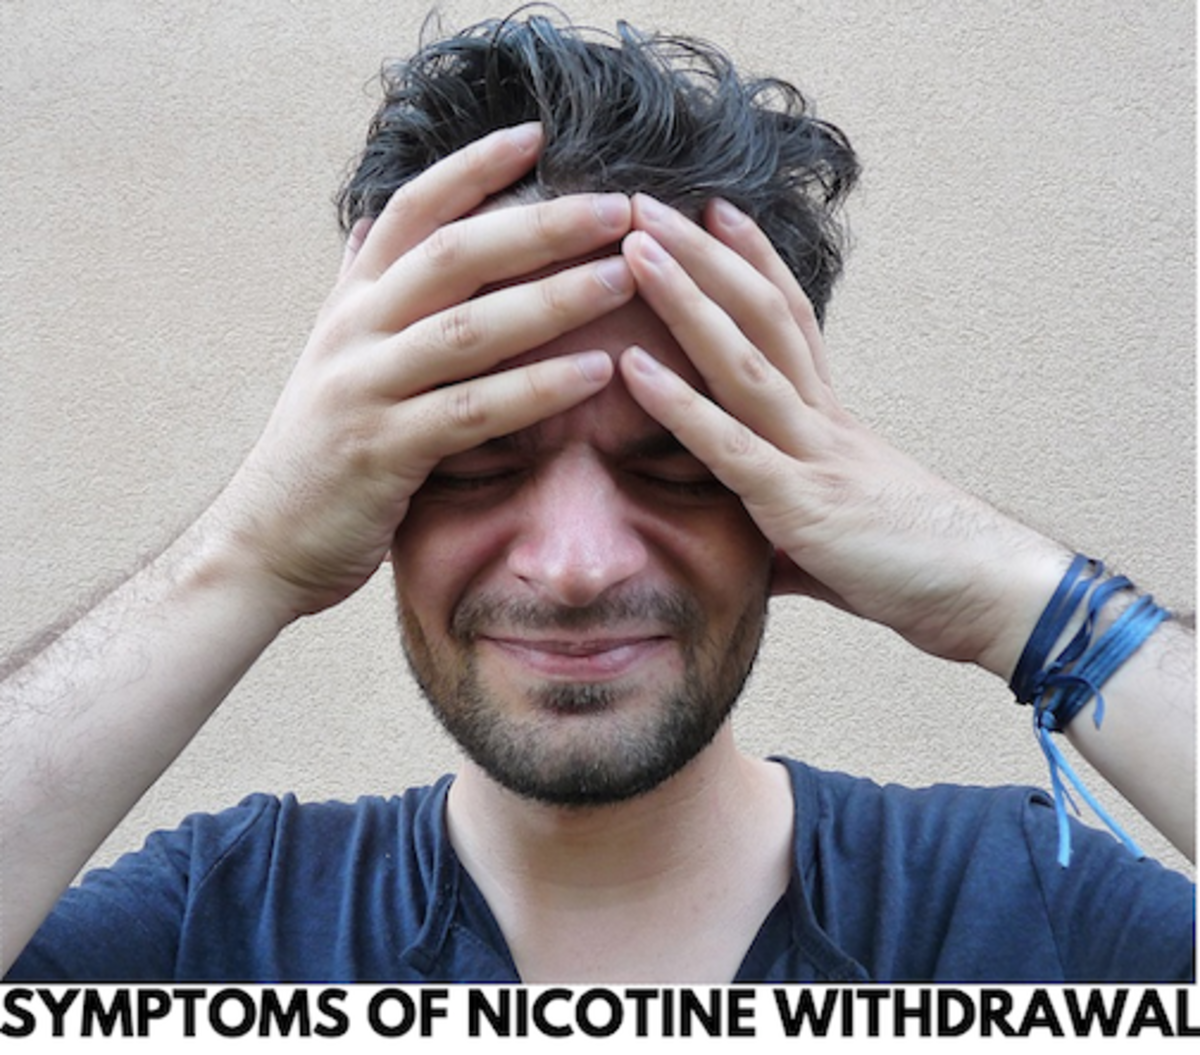 Headaches are a major part of nicotine withdrawal.